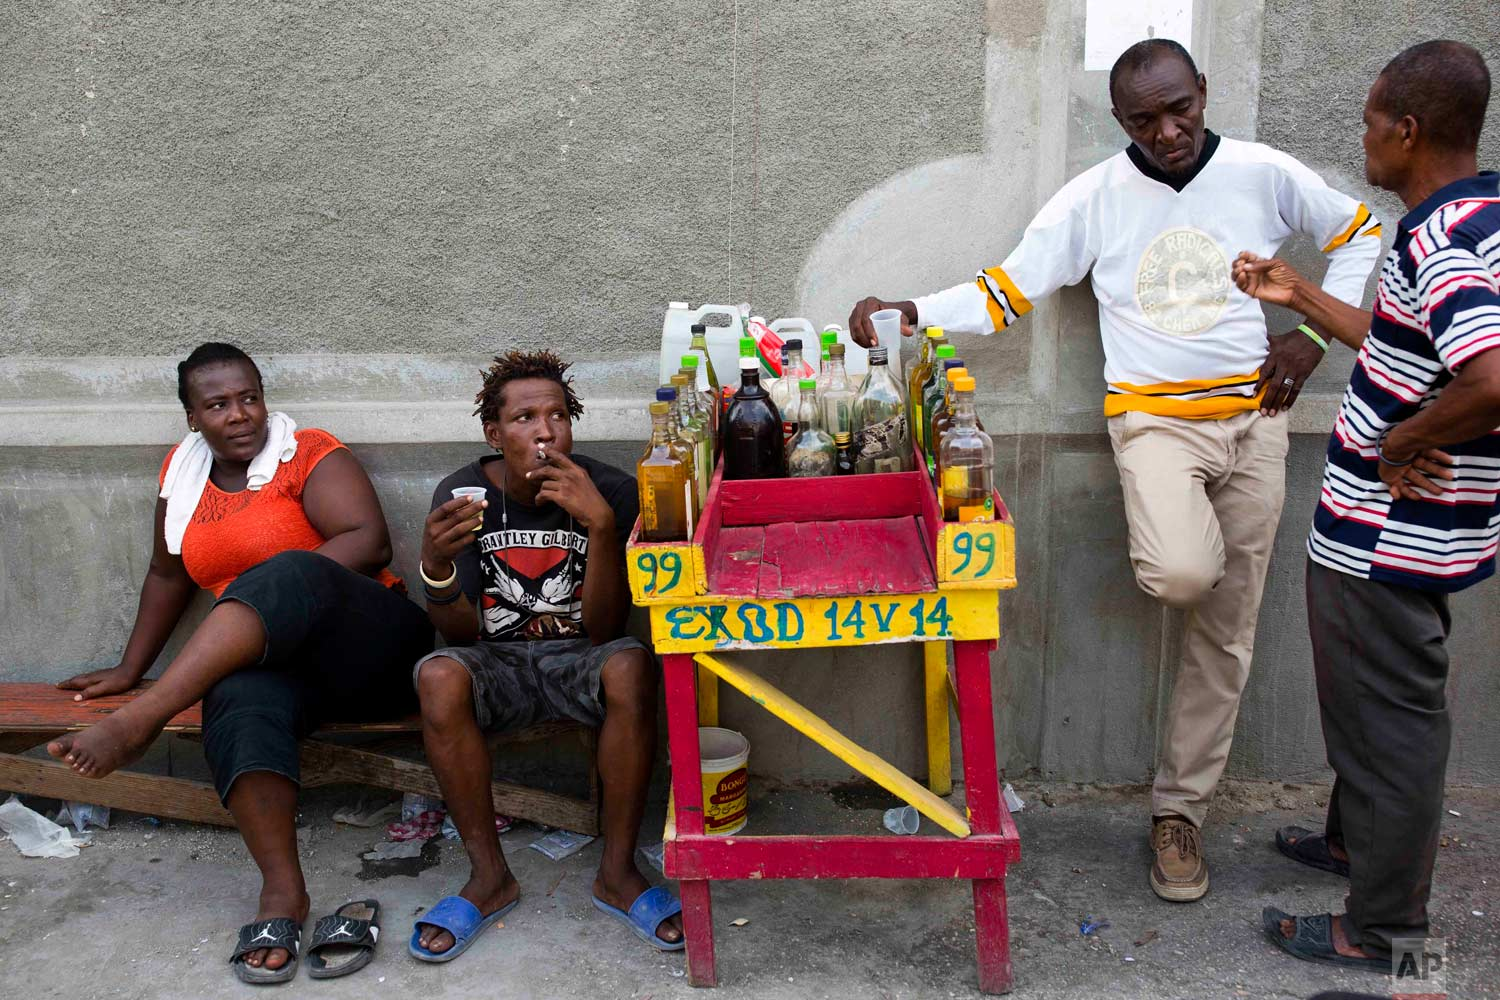 Eddy Lecty, who sells the sugar-based alcoholic drink known as clairin, second from right, talks to a client as his relative Junior Lecty and local Suzie Bazil, left, sit nearby in the Cite Soleil area of Port-au-Prince, Haiti, Tuesday, July 11, 2017. Eddy Lecty, who's selling spot has been coined by locals The Citizens Club, says people trust his product and former Haitians presidents like Rene Preval and Michel Martelly have stopped by to have a drink. (AP Photo/Dieu Nalio Chery)